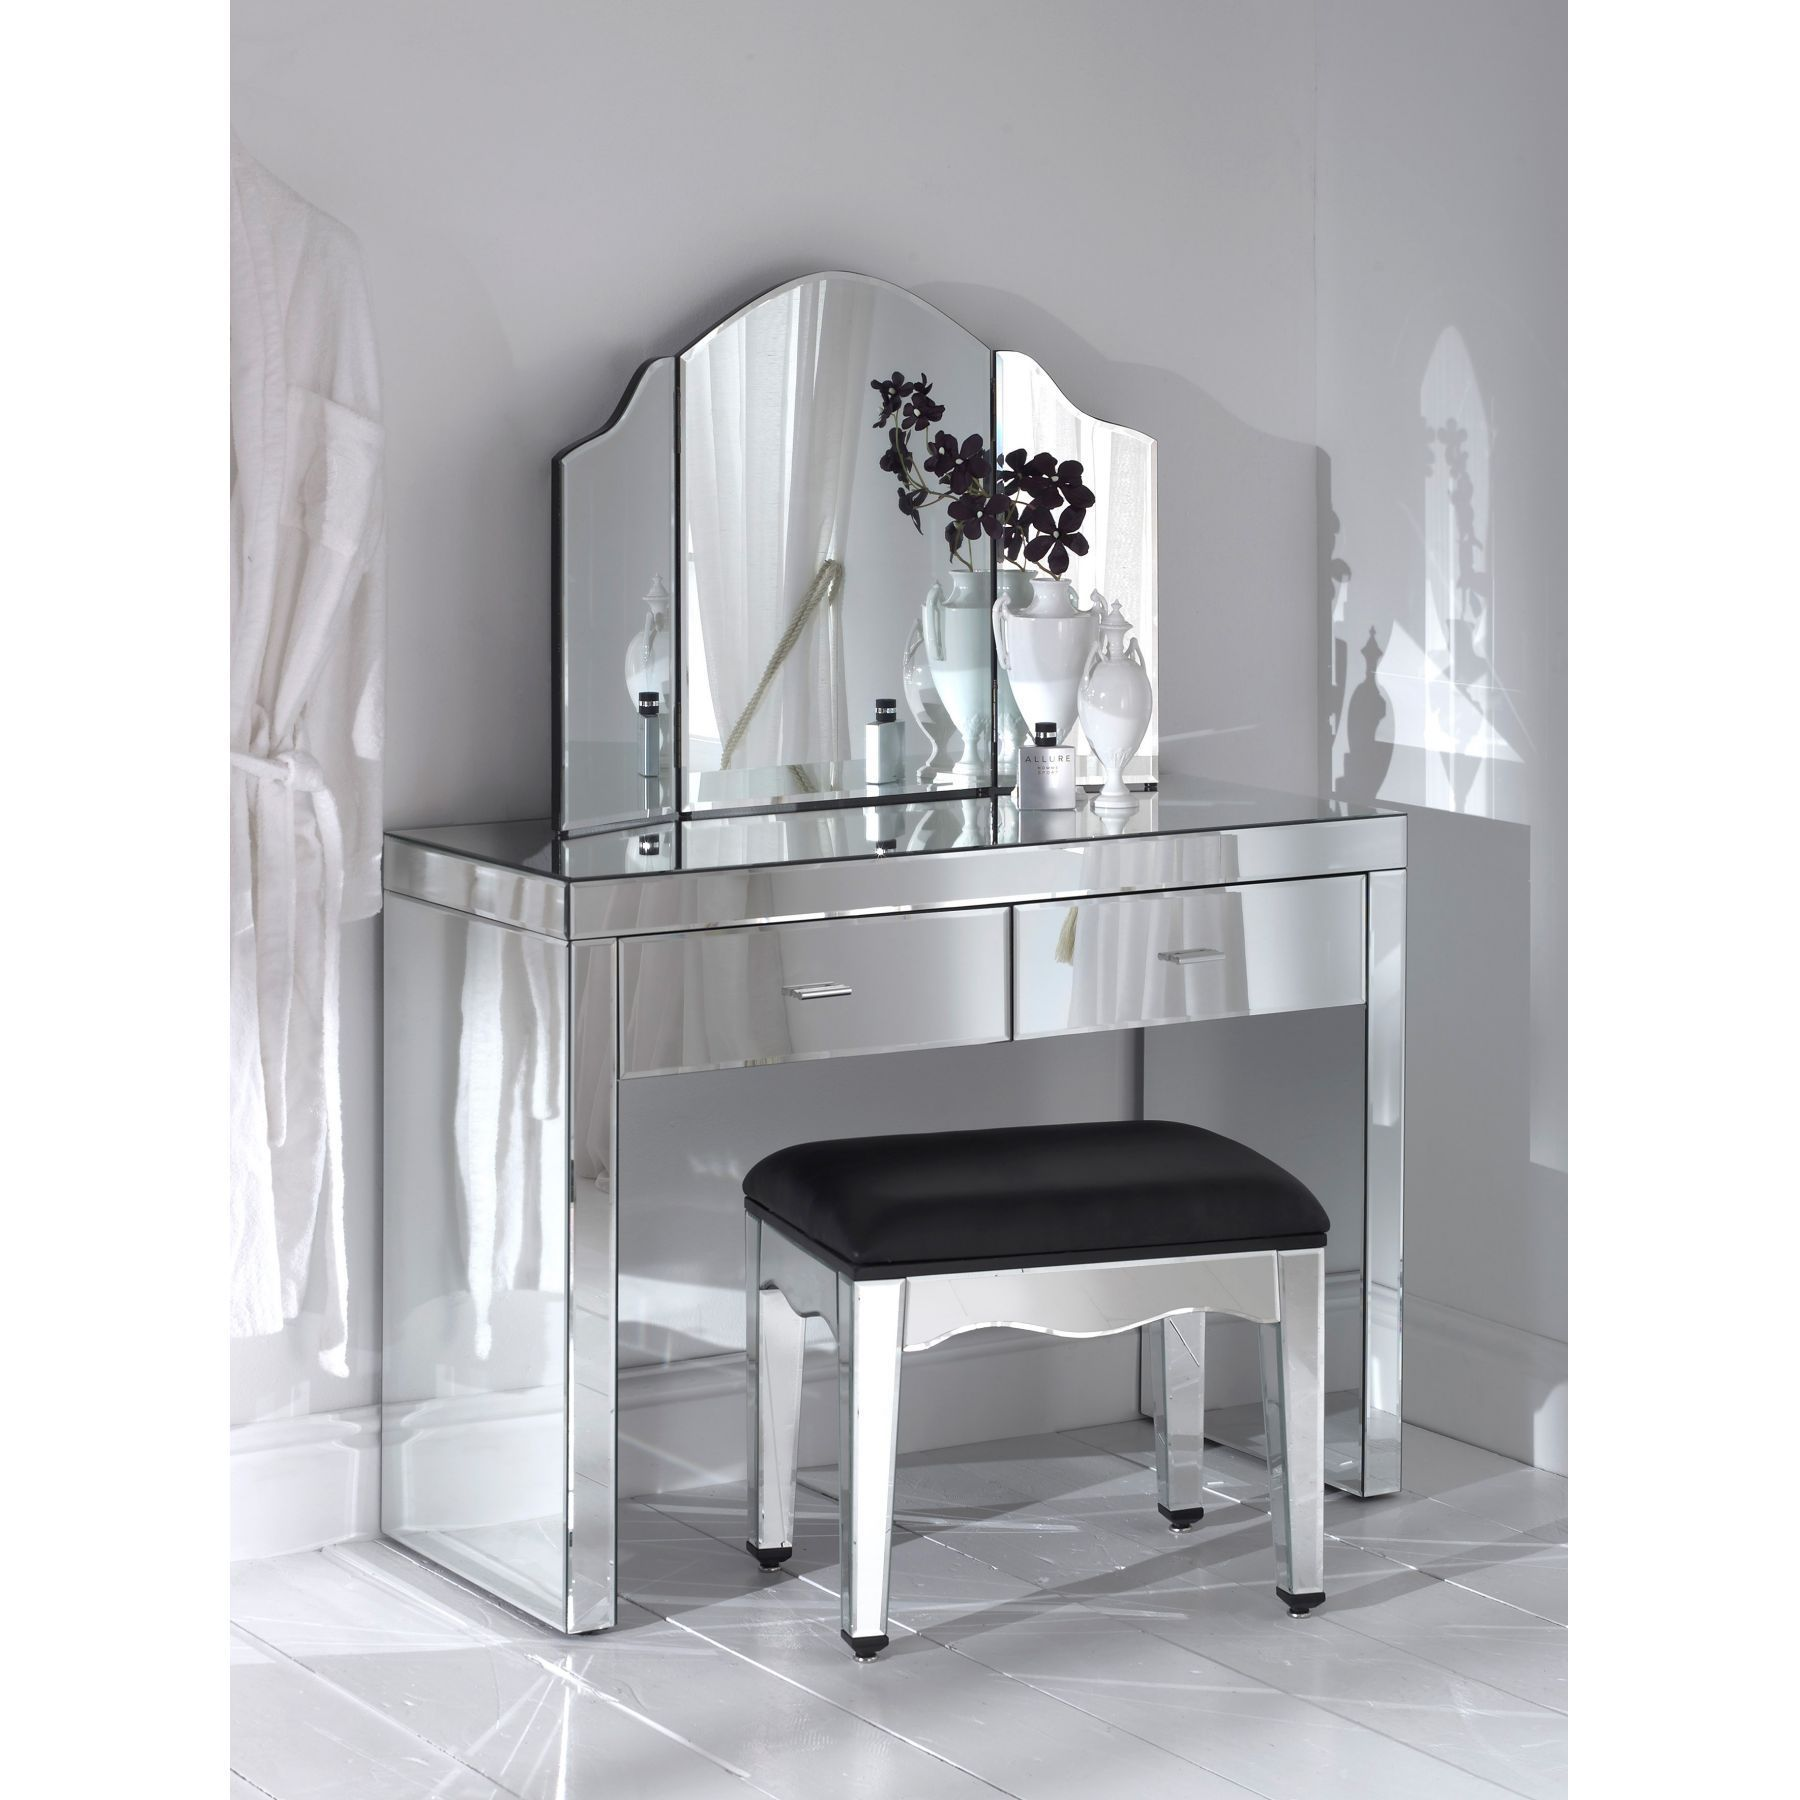 Mirrored Glass Dressing Table Stool Modern Dressing Table